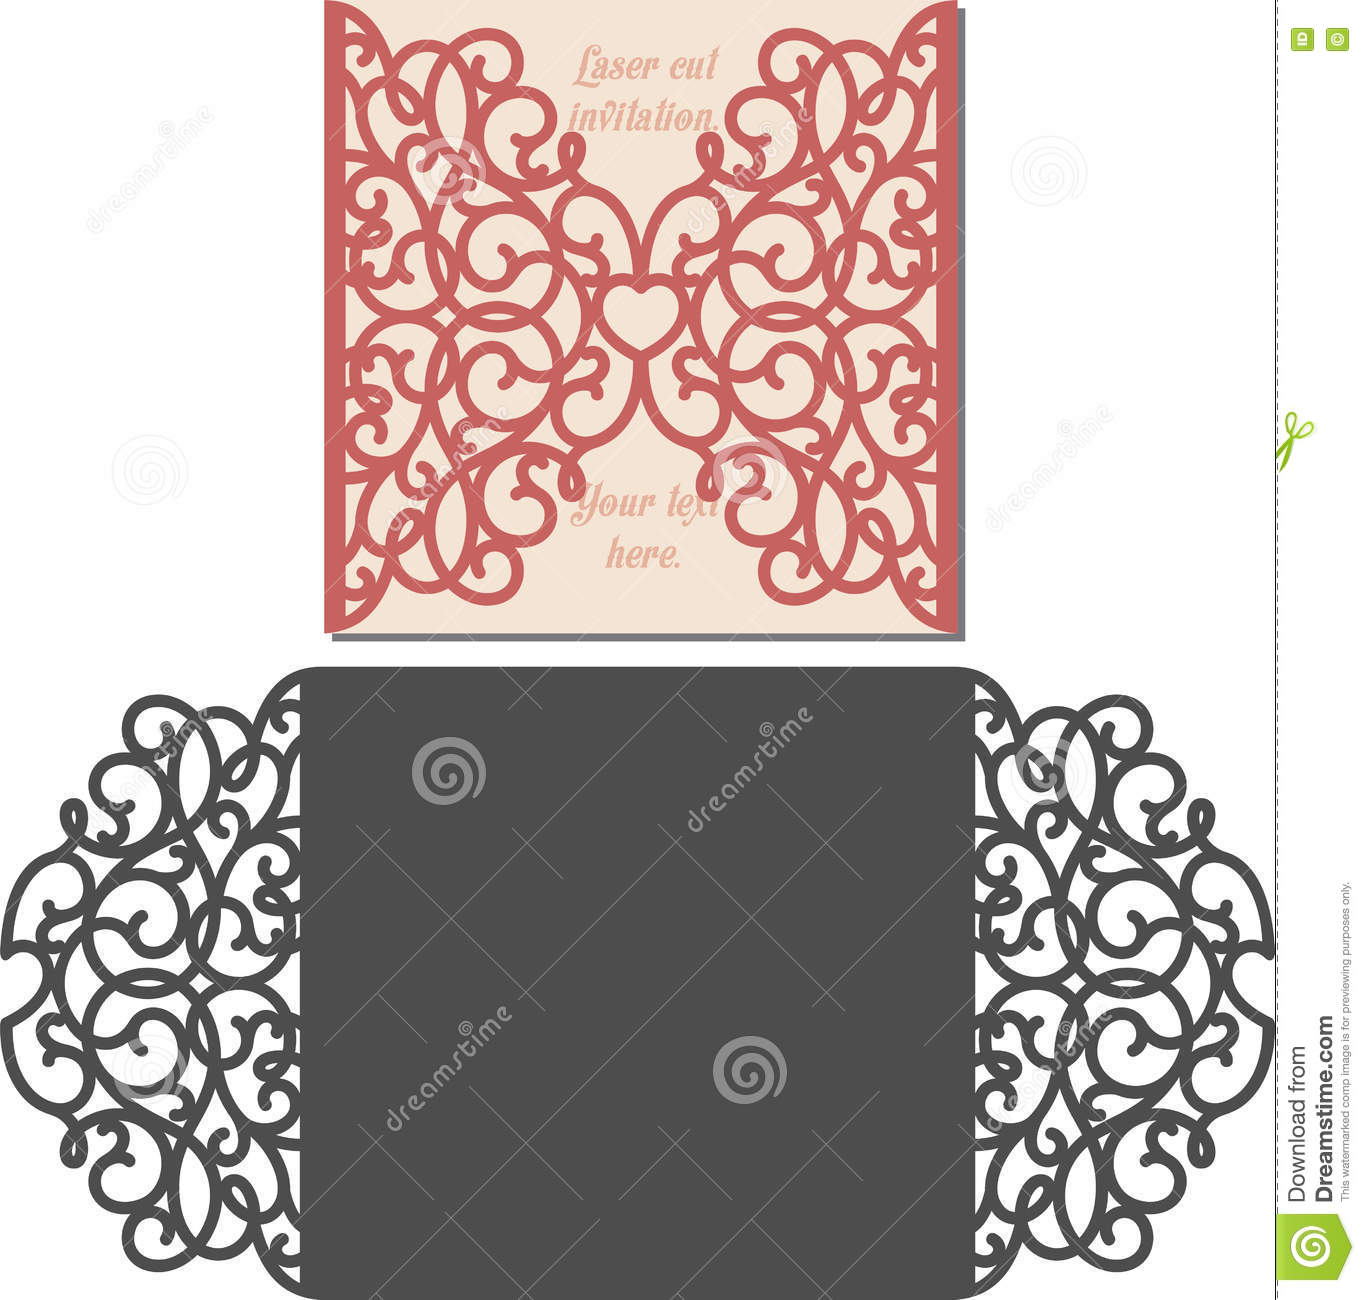 Invitation Card Template Vector Image 42167833 – Template Invitation Card